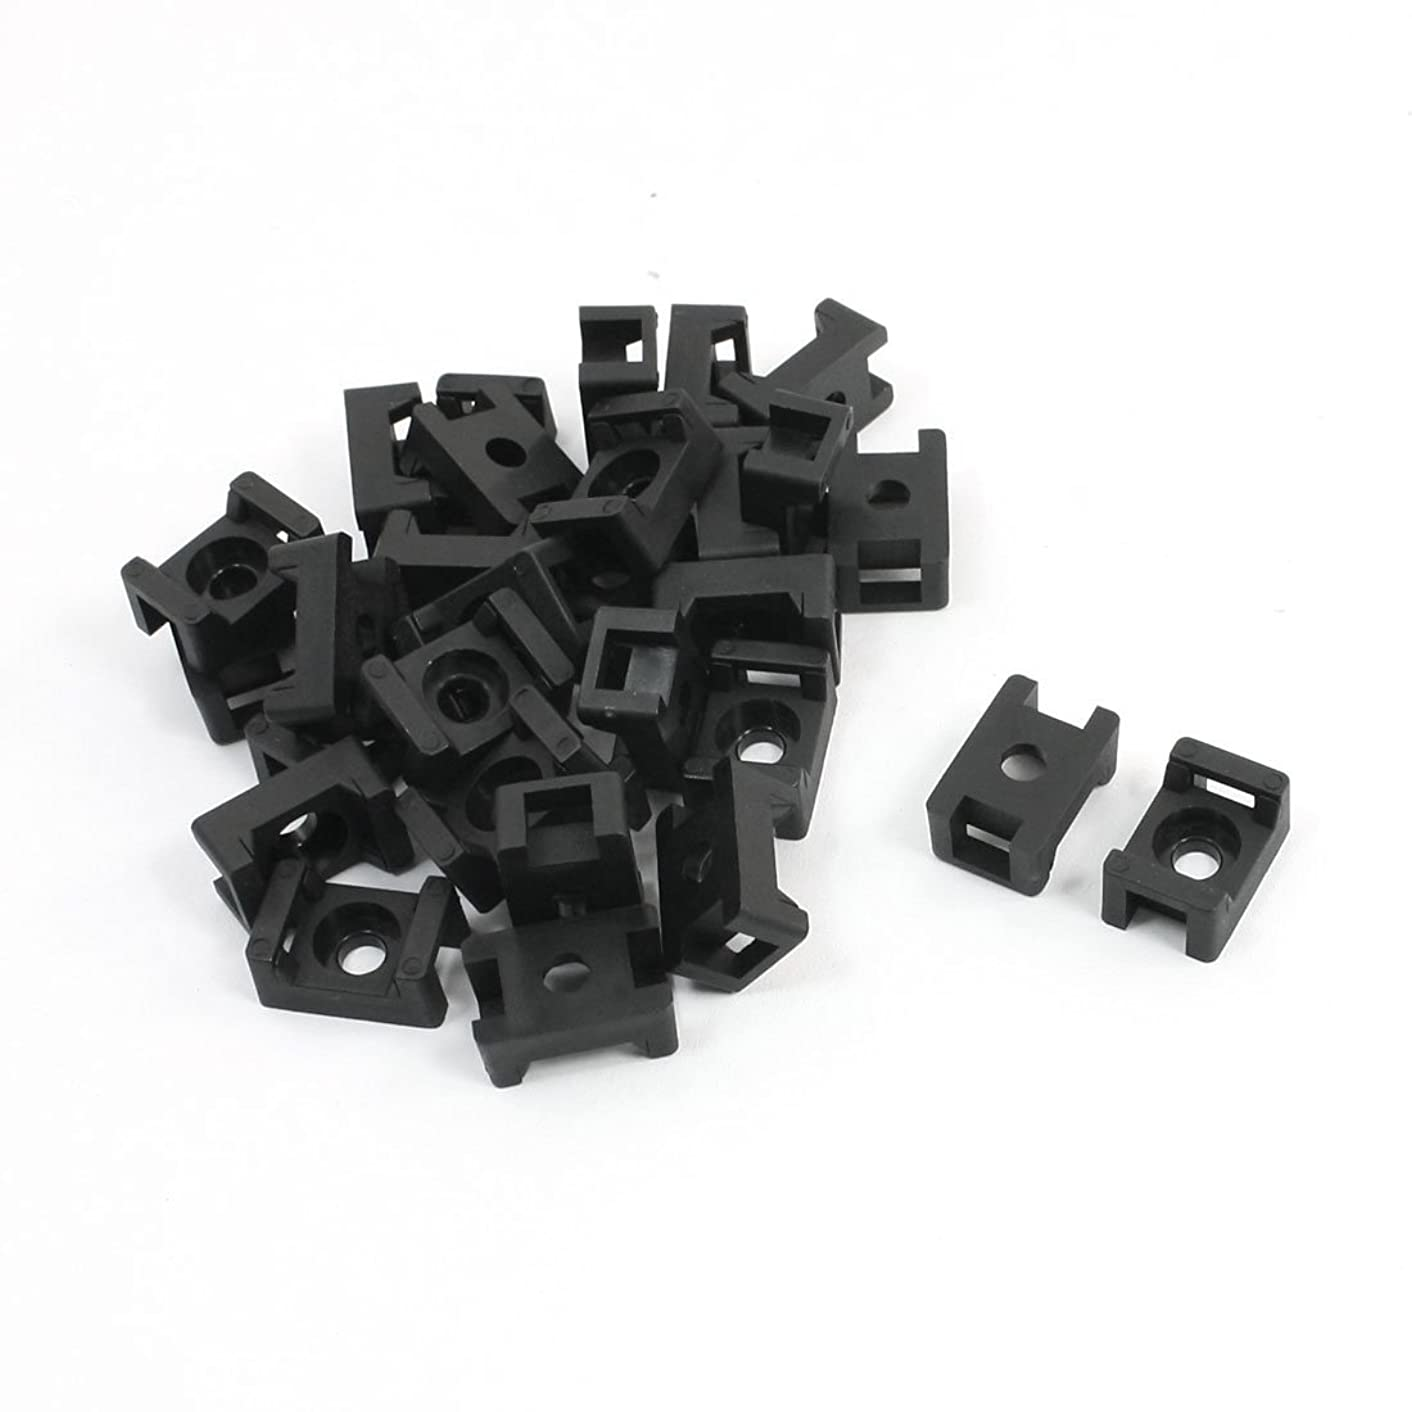 Uxcell Plastic Mounting Wire Cable Tie Holder, 5.5mm Width, 30 Pcs, Black